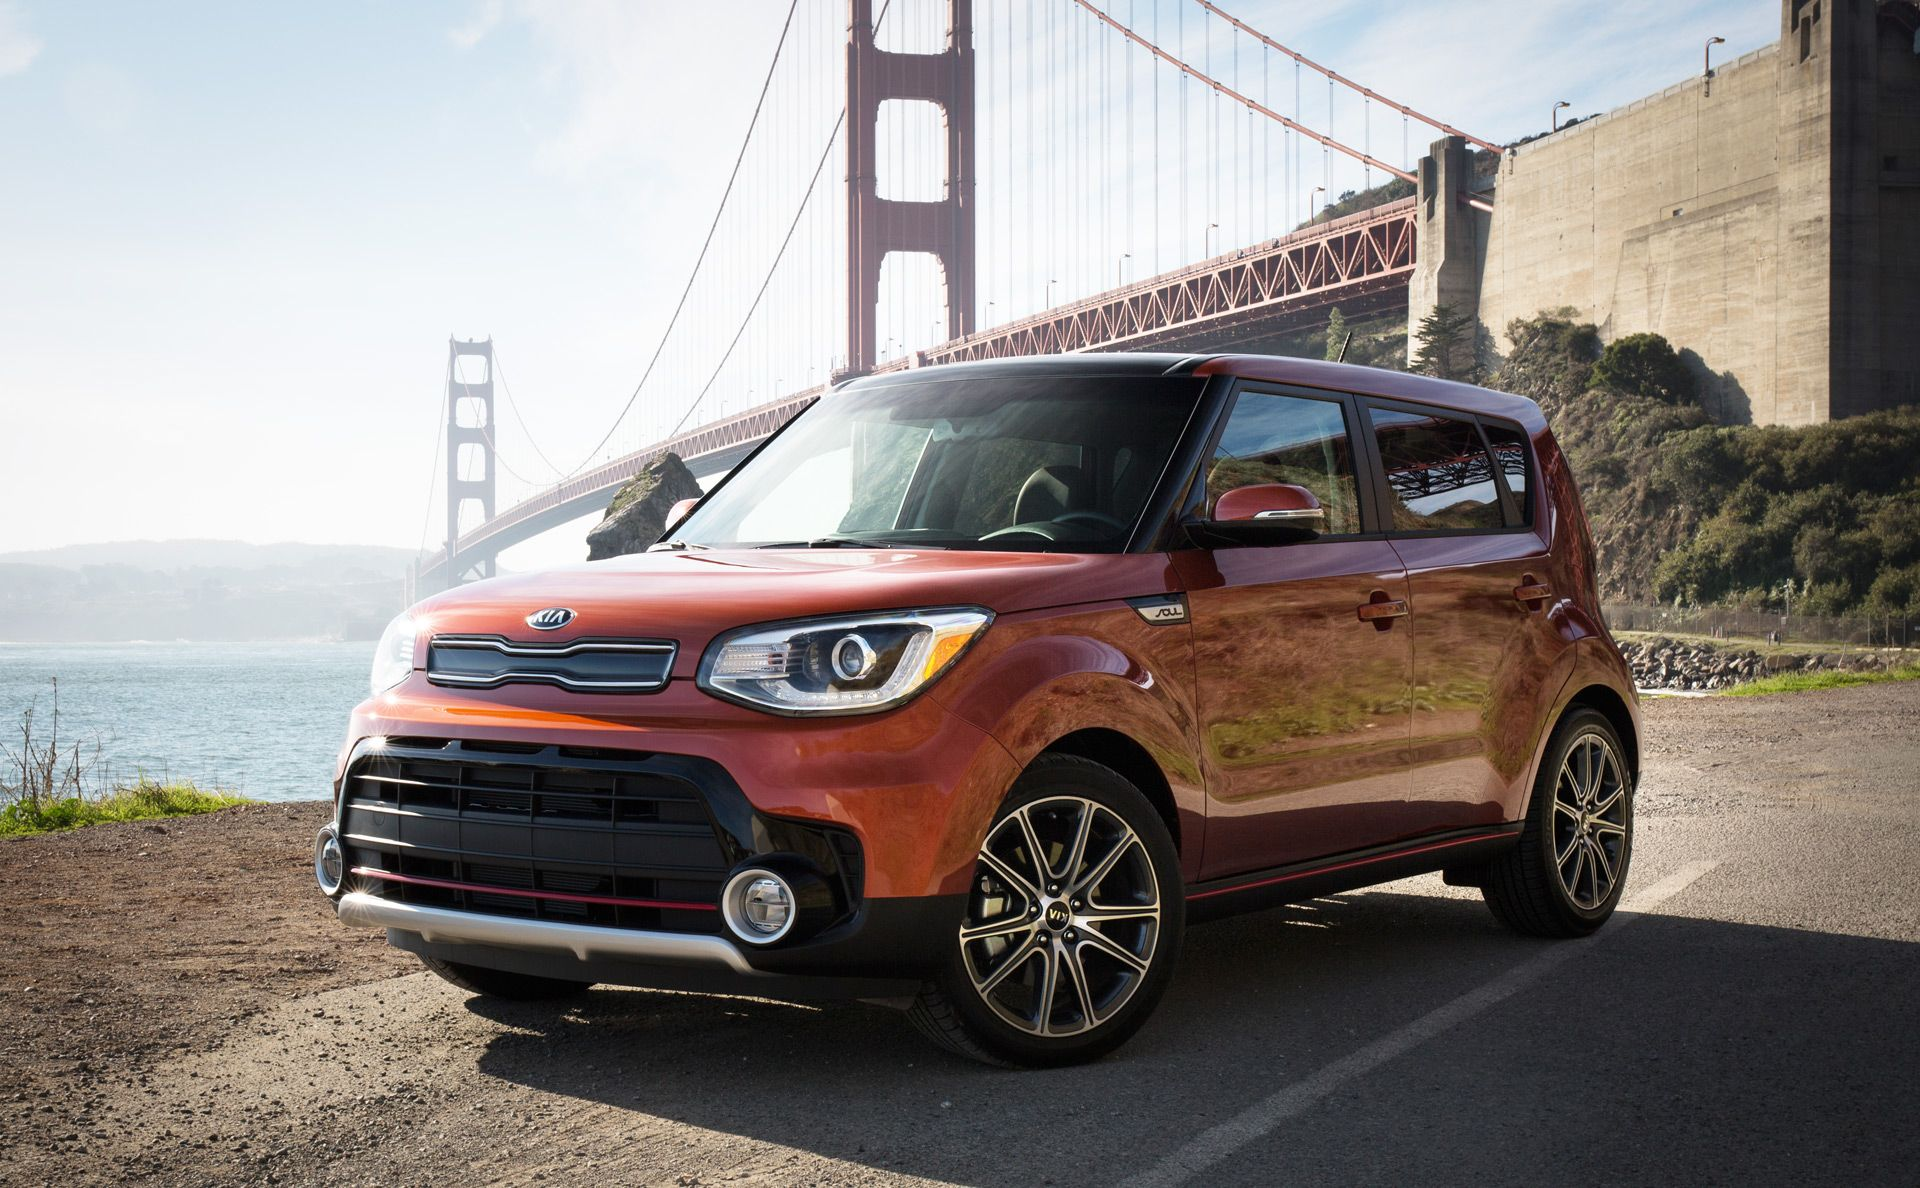 2019 Soul Exclaim Is No Ordinary Car From The 201 Horsepower Turbocharged Engine To The Quick Shifting 7 Speed Dual Clutch Kia Soul Kia New Cars